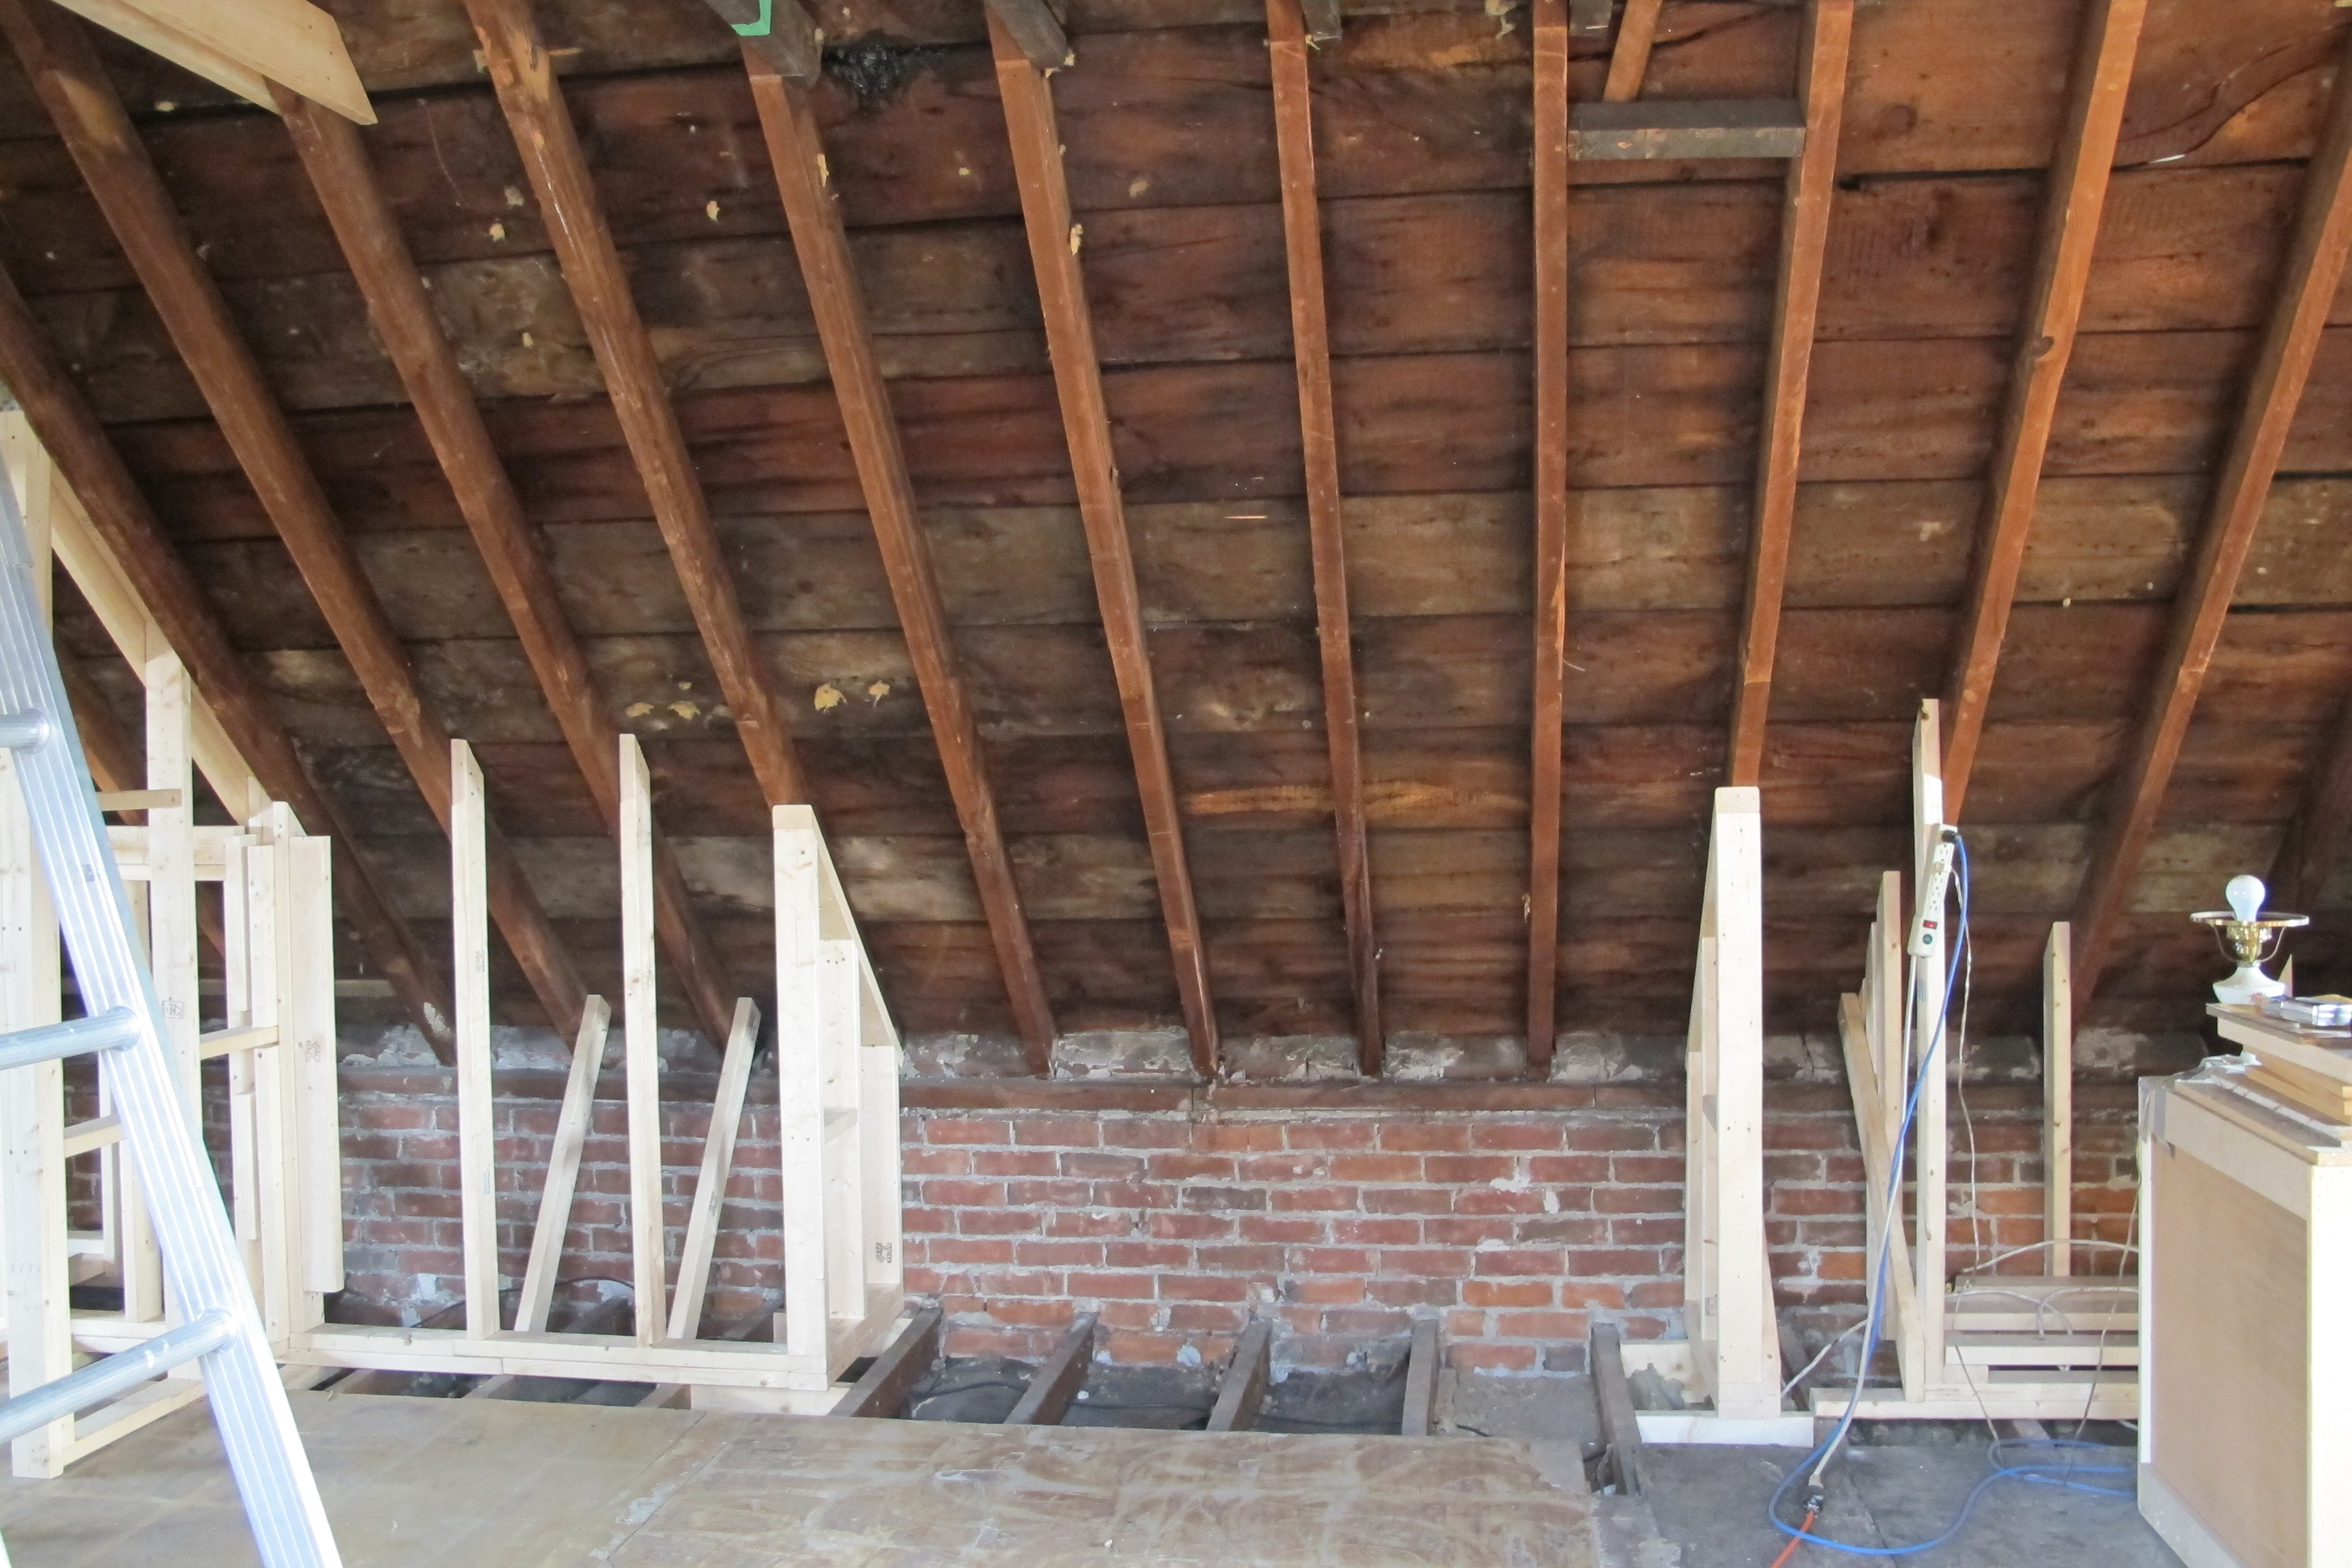 I want to add a shed dormer to the attic room i already for Shed dormer addition cost